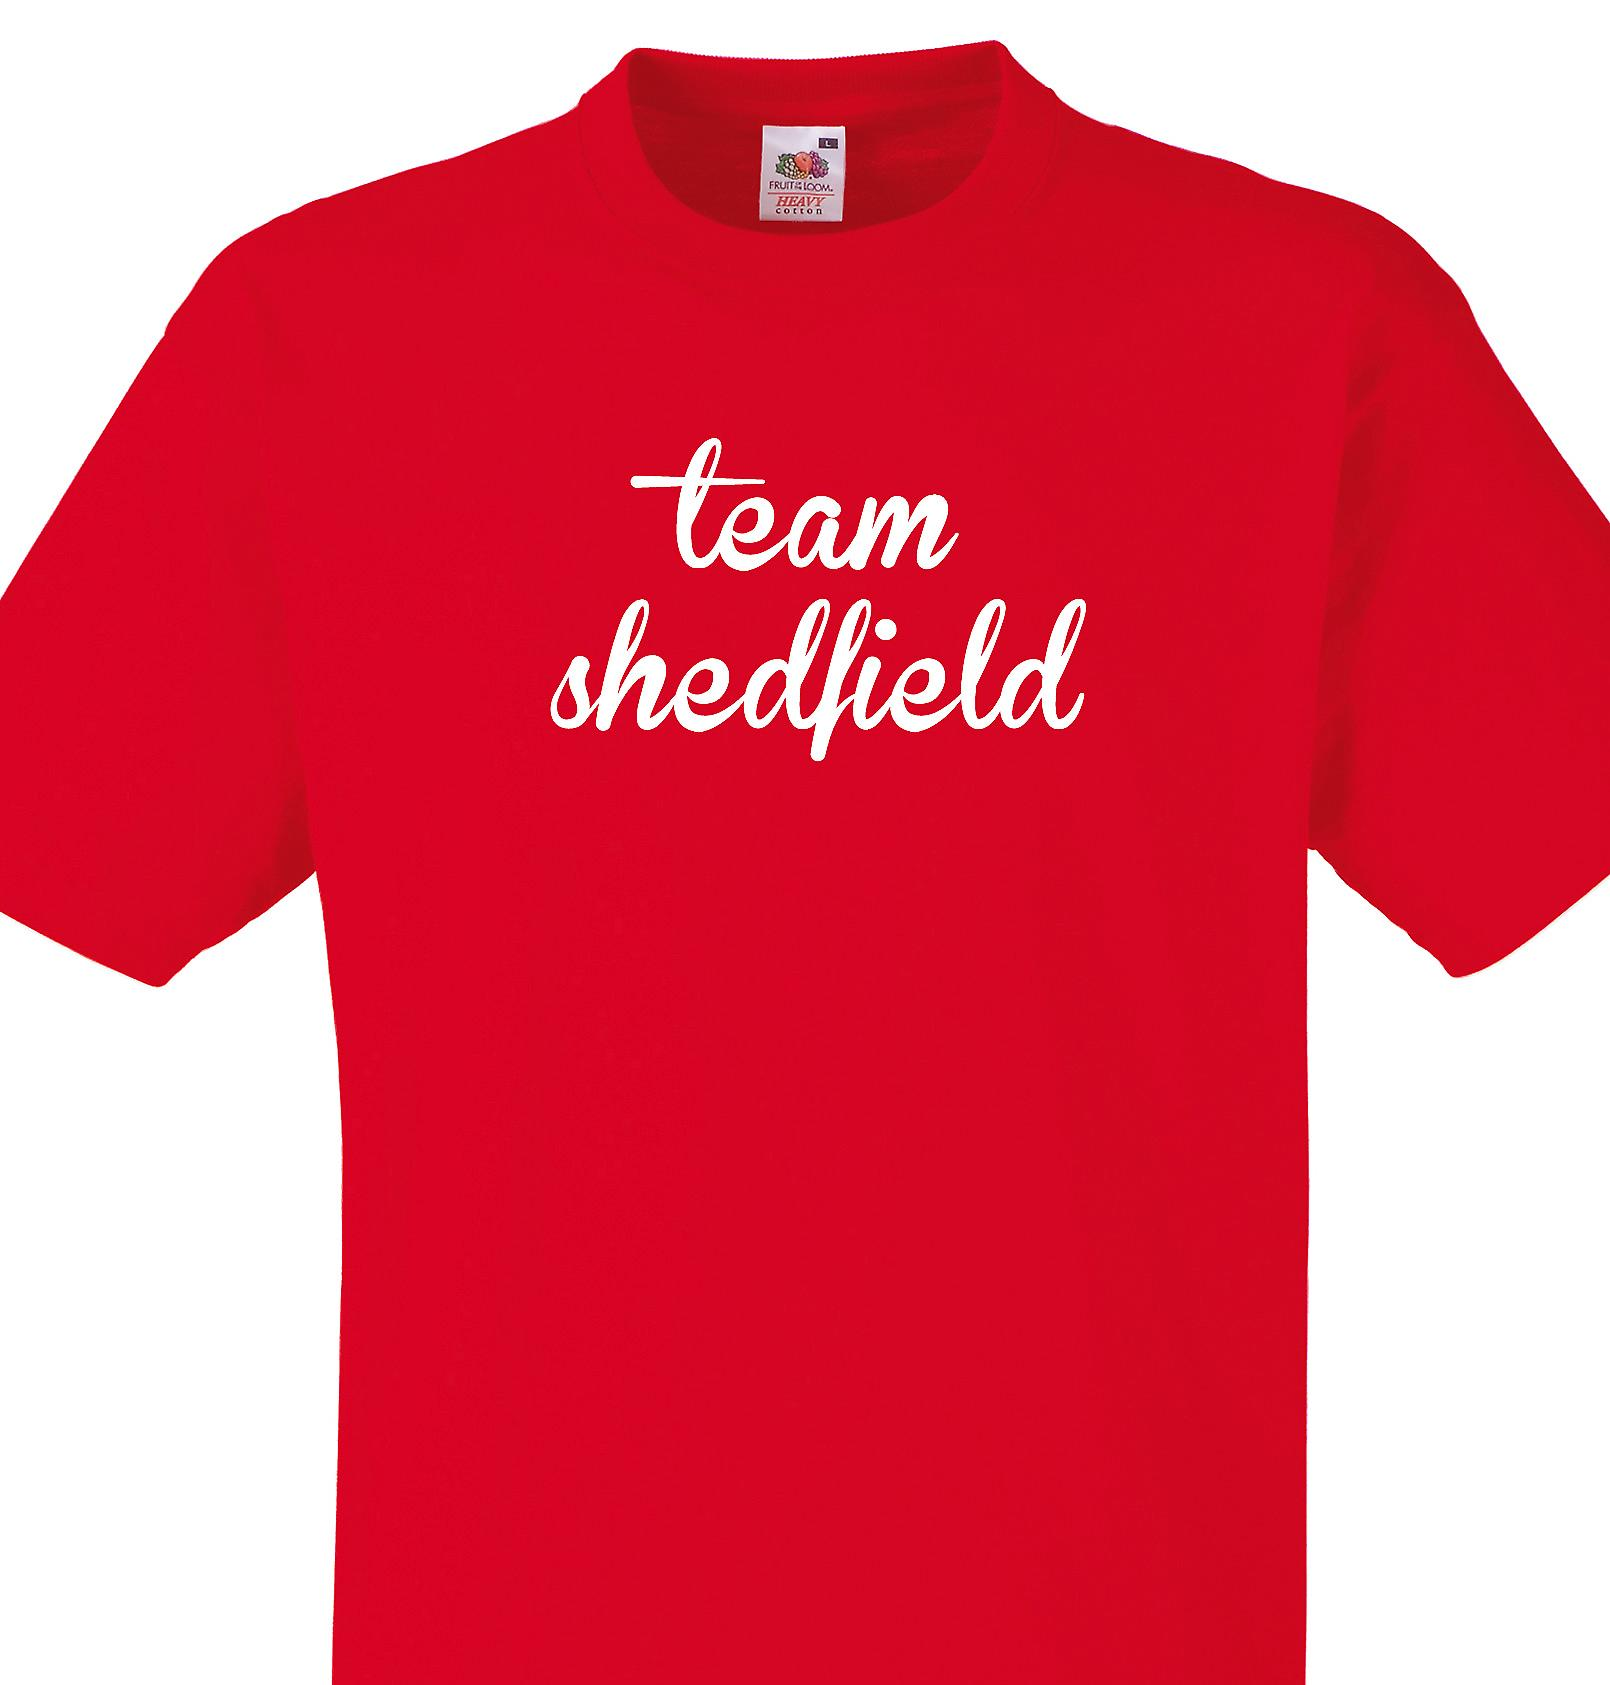 Team Shedfield Red T shirt